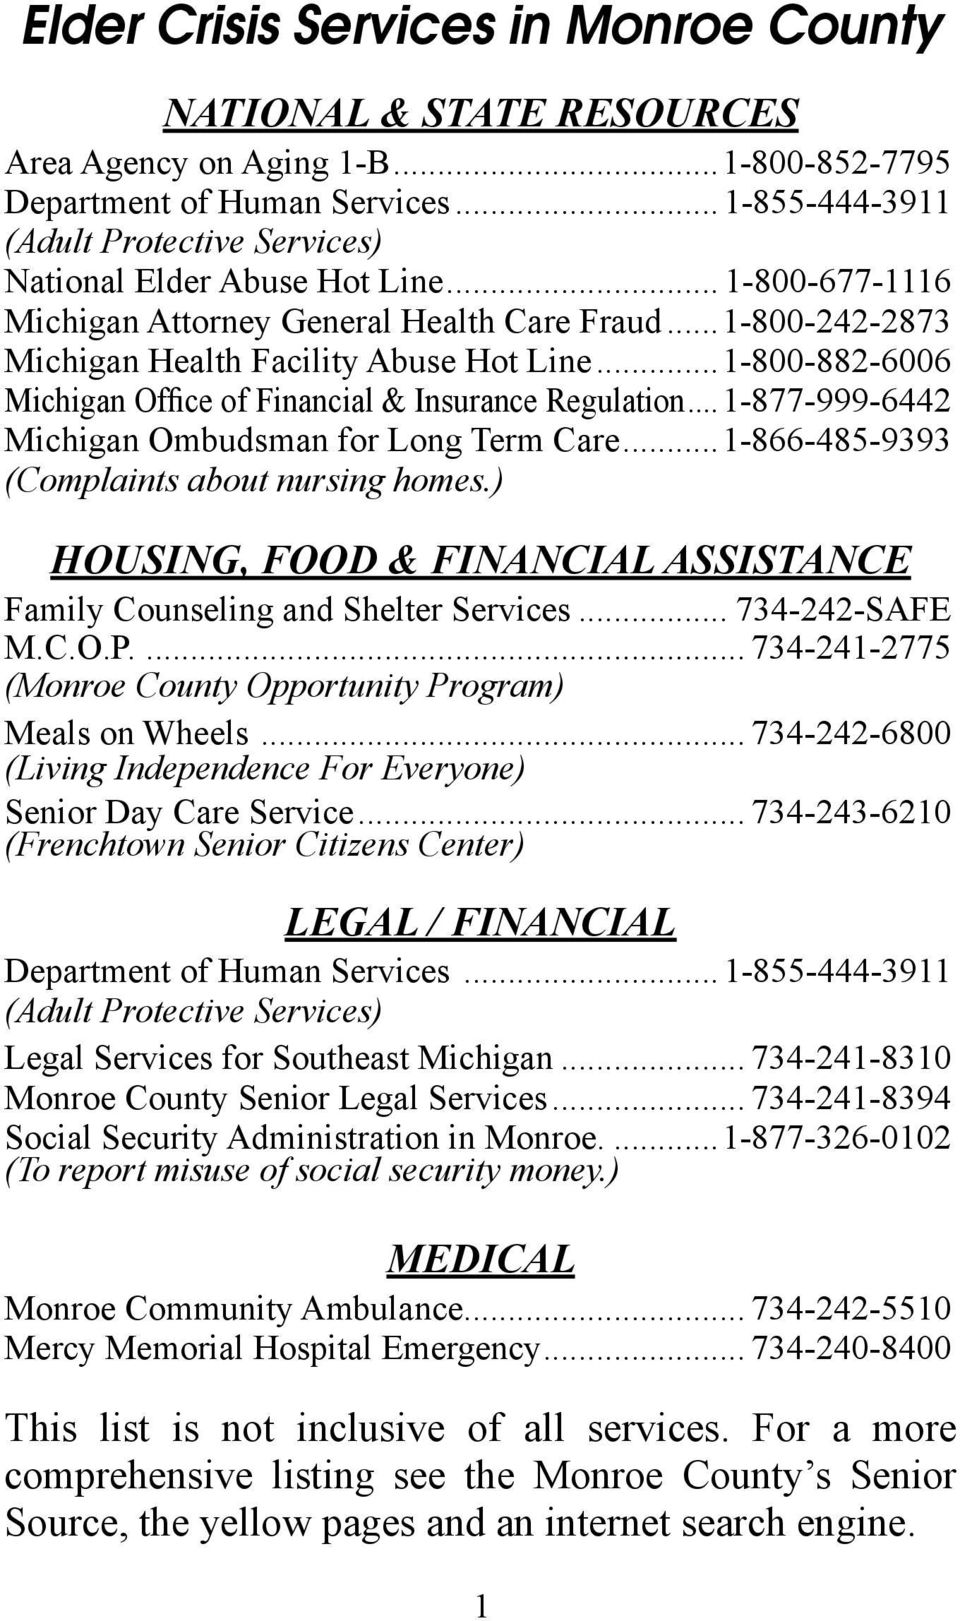 ..1-800-882-6006 Michigan Office of Financial & Insurance Regulation...1-877-999-6442 Michigan Ombudsman for Long Term Care...1-866-485-9393 (Complaints about nursing homes.